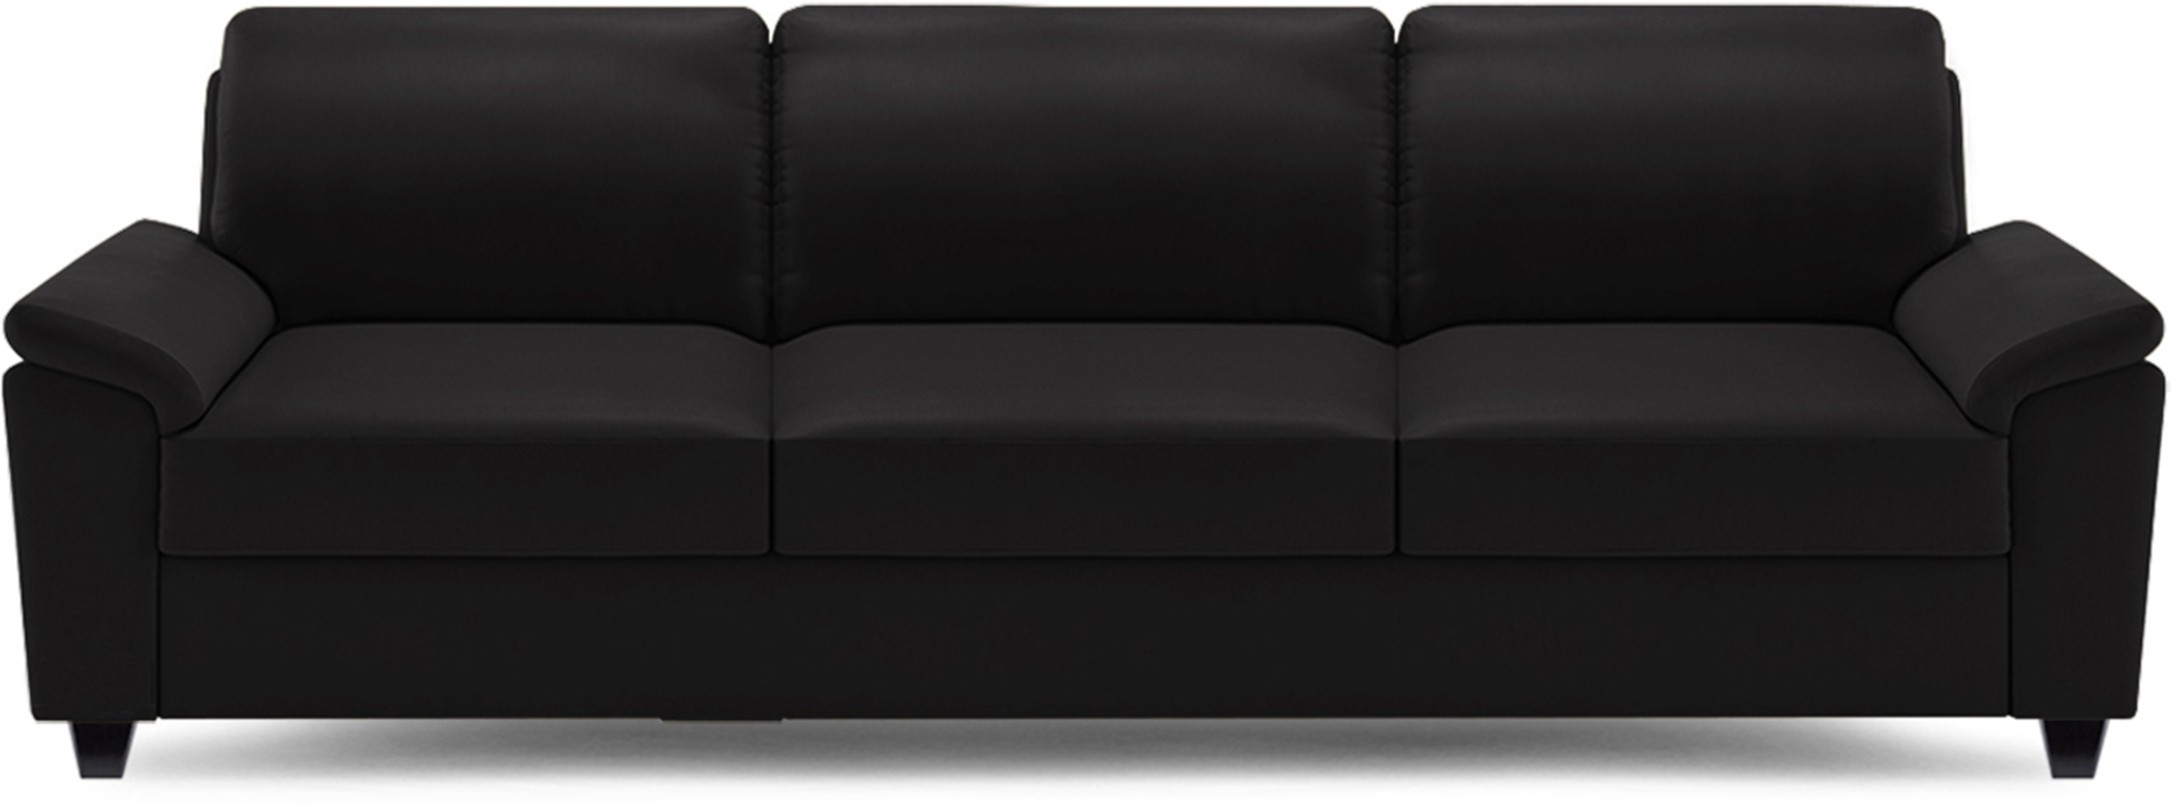 View Dolphin Oxford Leatherette 3 Seater Sofa(Finish Color - Black) Furniture (Dolphin)